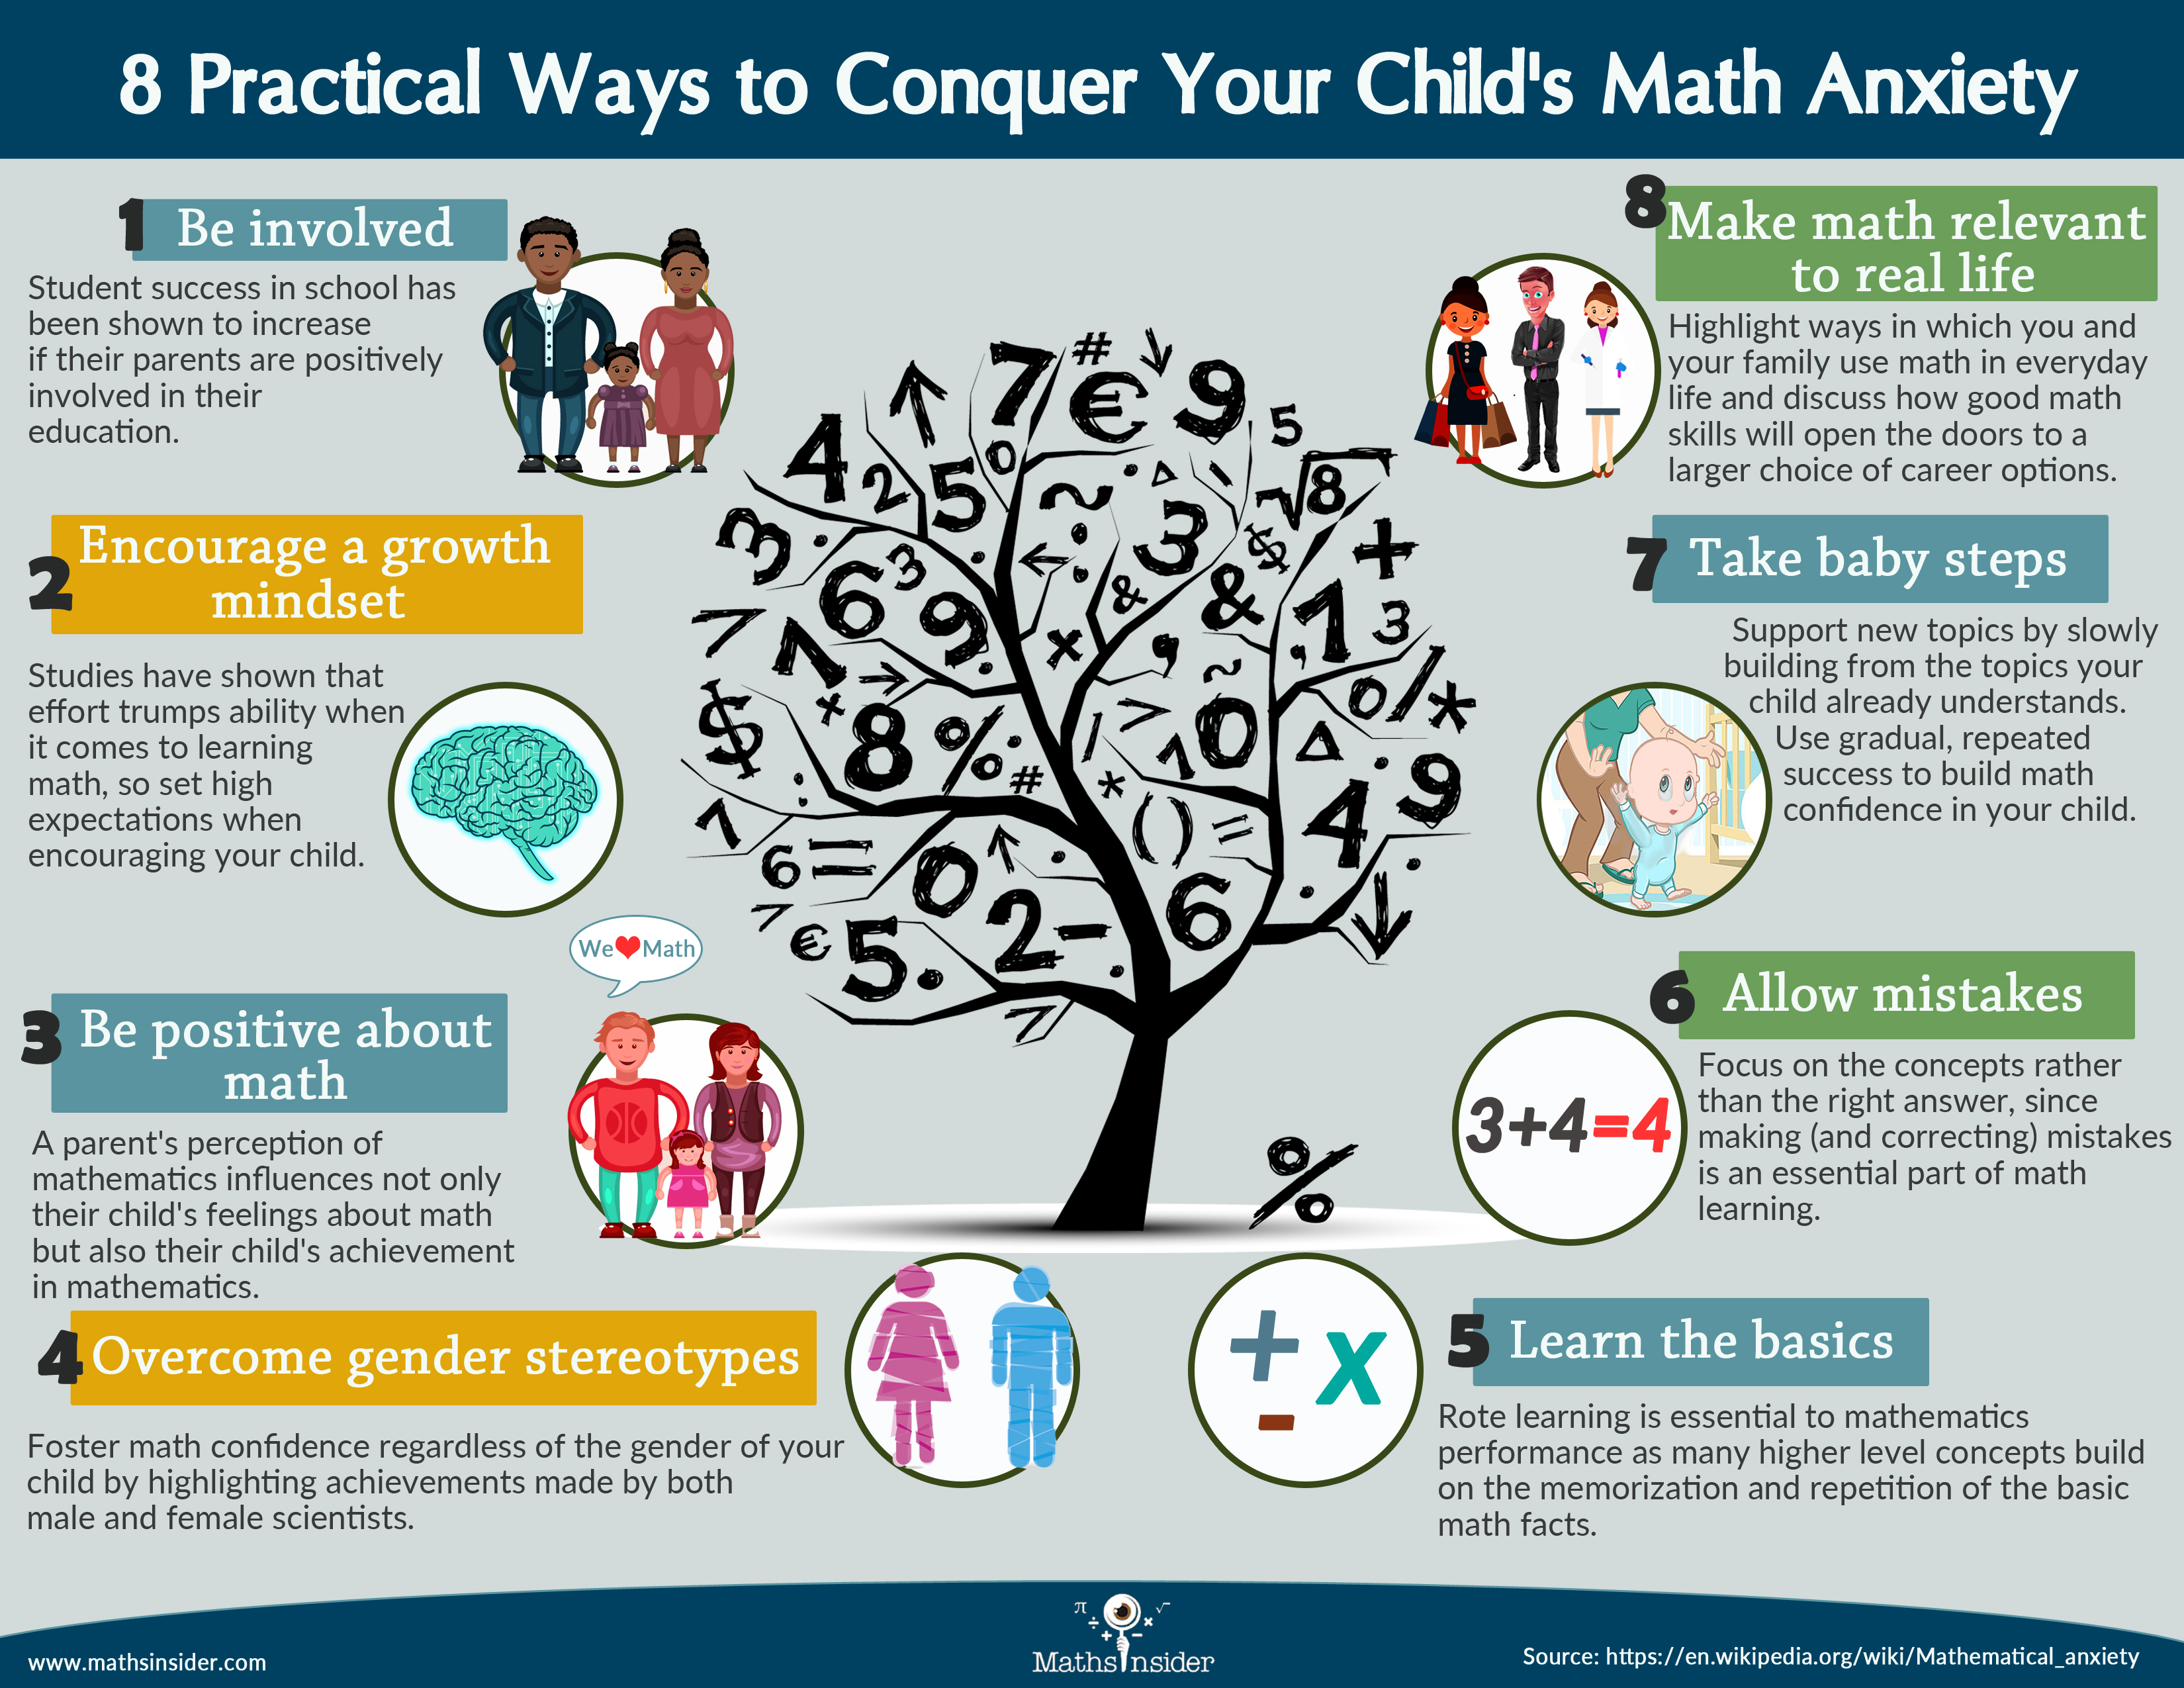 8 Practical Ways to Conquer Your Child